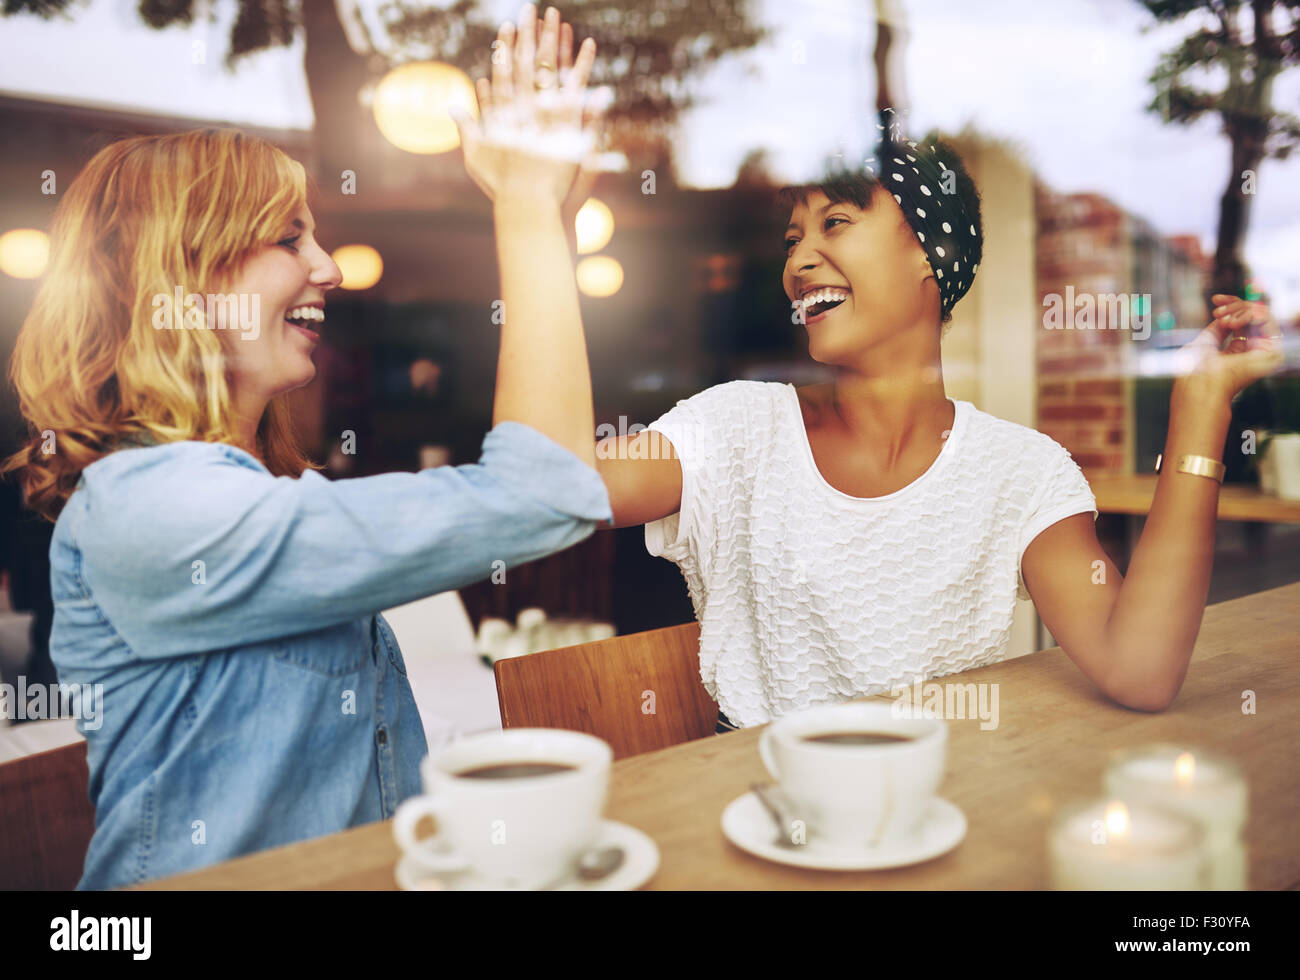 Happy exuberant young girl friends giving a high five slapping each others hand in congratulations as they sit together - Stock Image